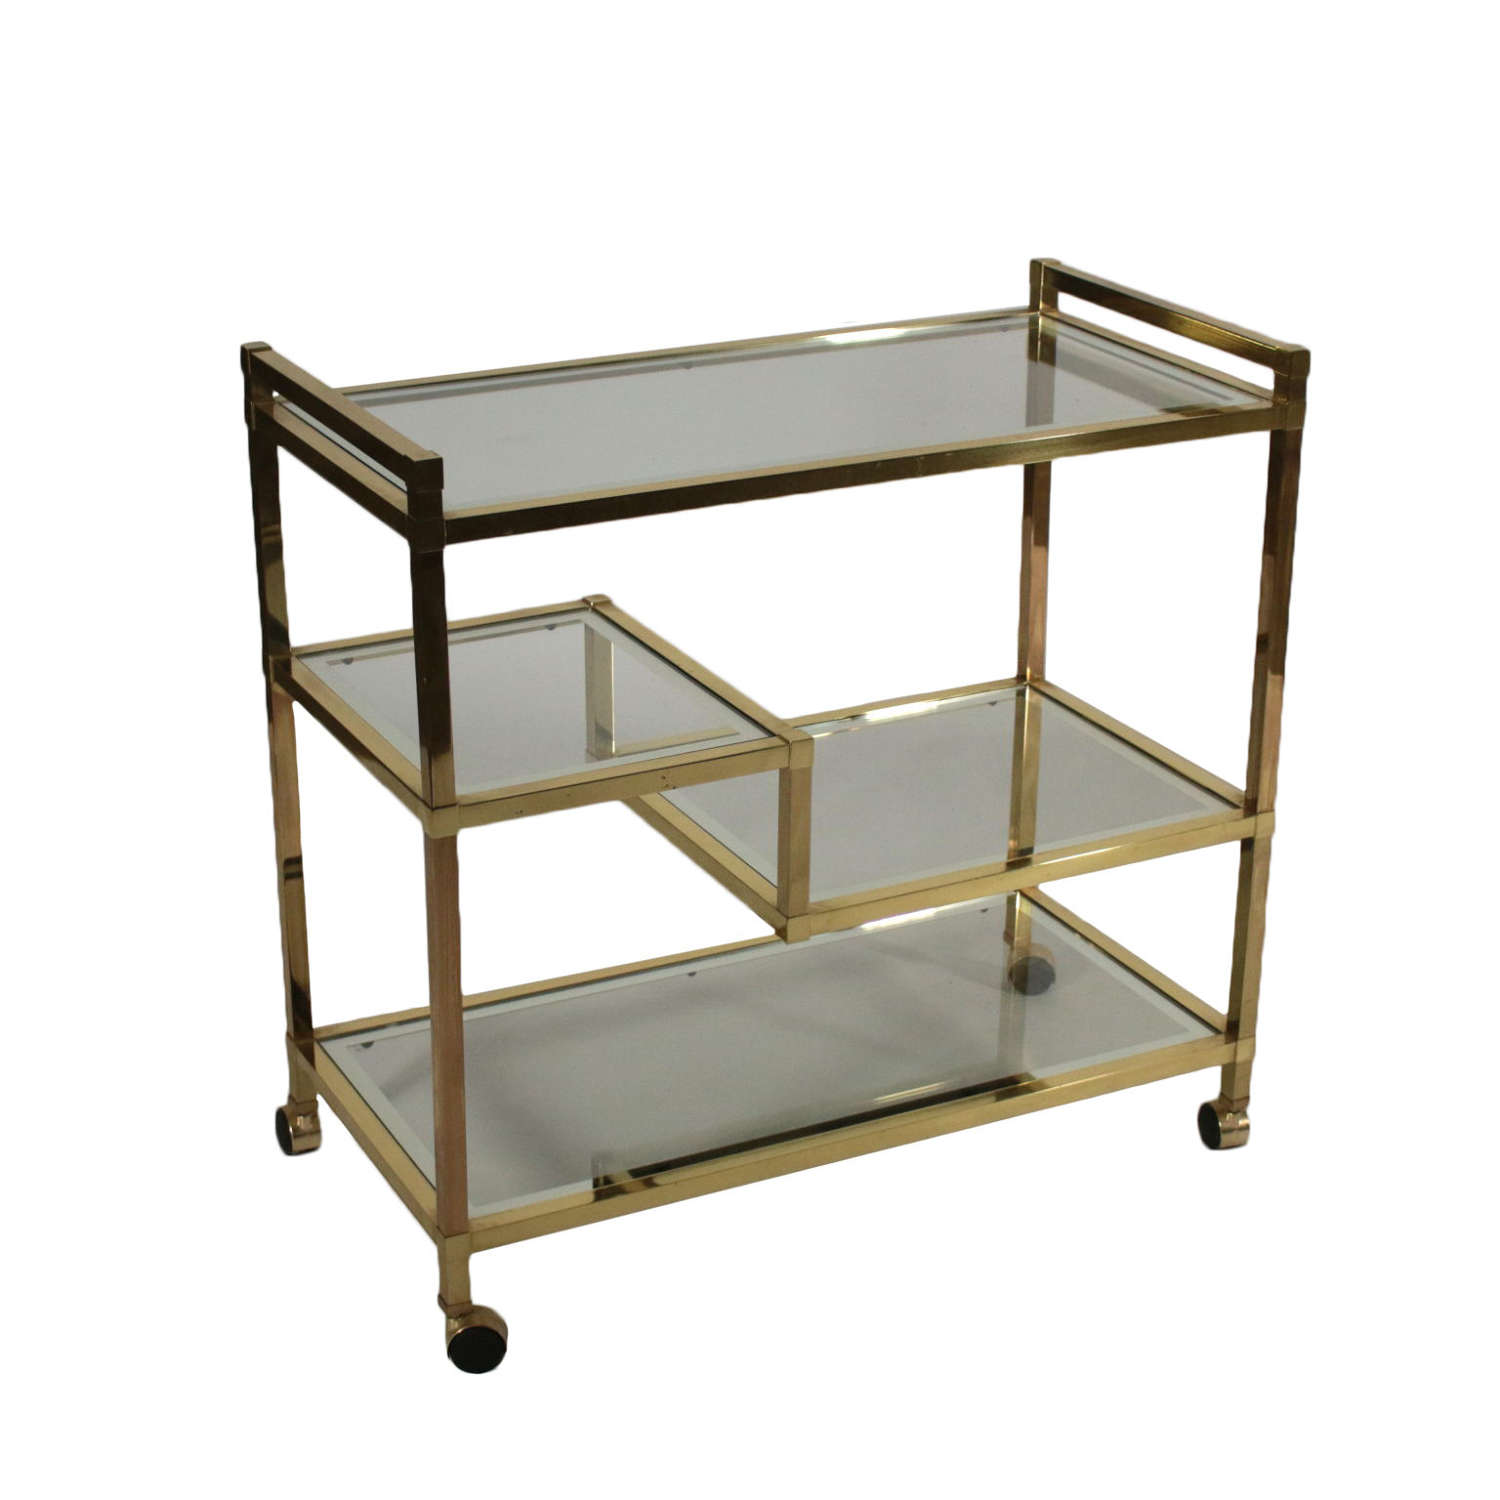 Romeo Rega brass and chrome trolley